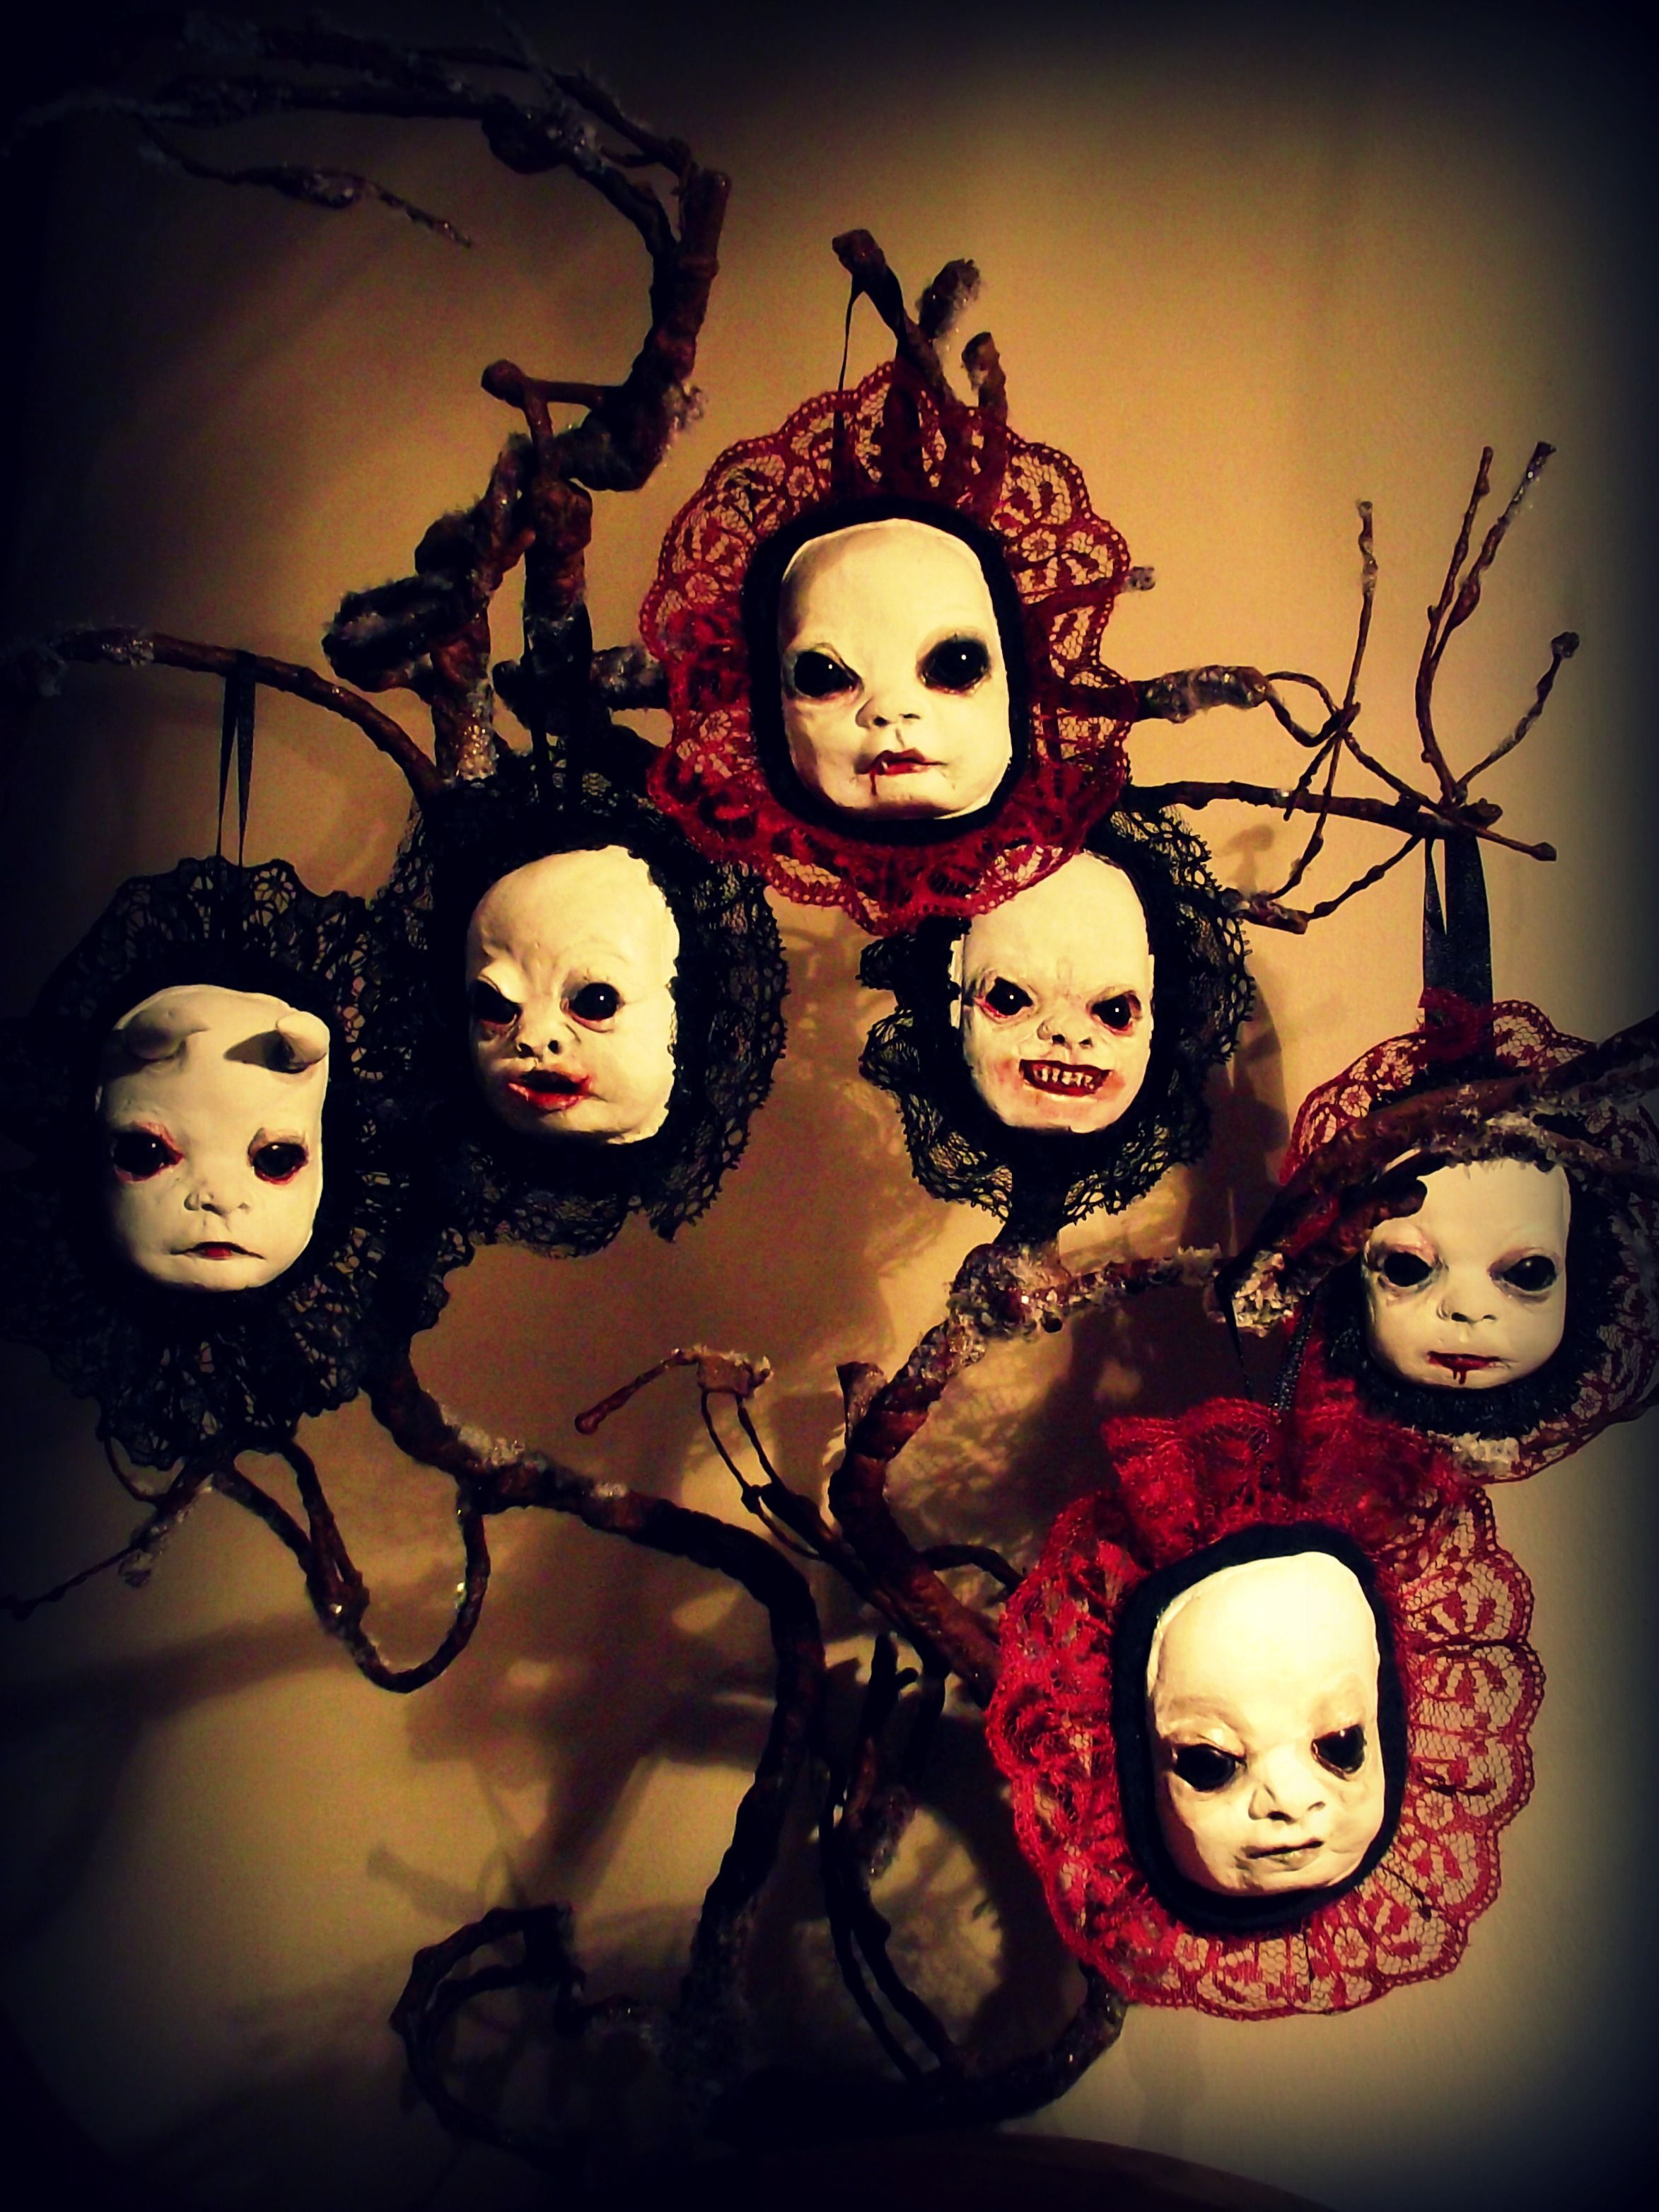 halloween tree decorations are nowhere as popular as christmas trees you should not neglect this type of decoration as it can be a very creative way to